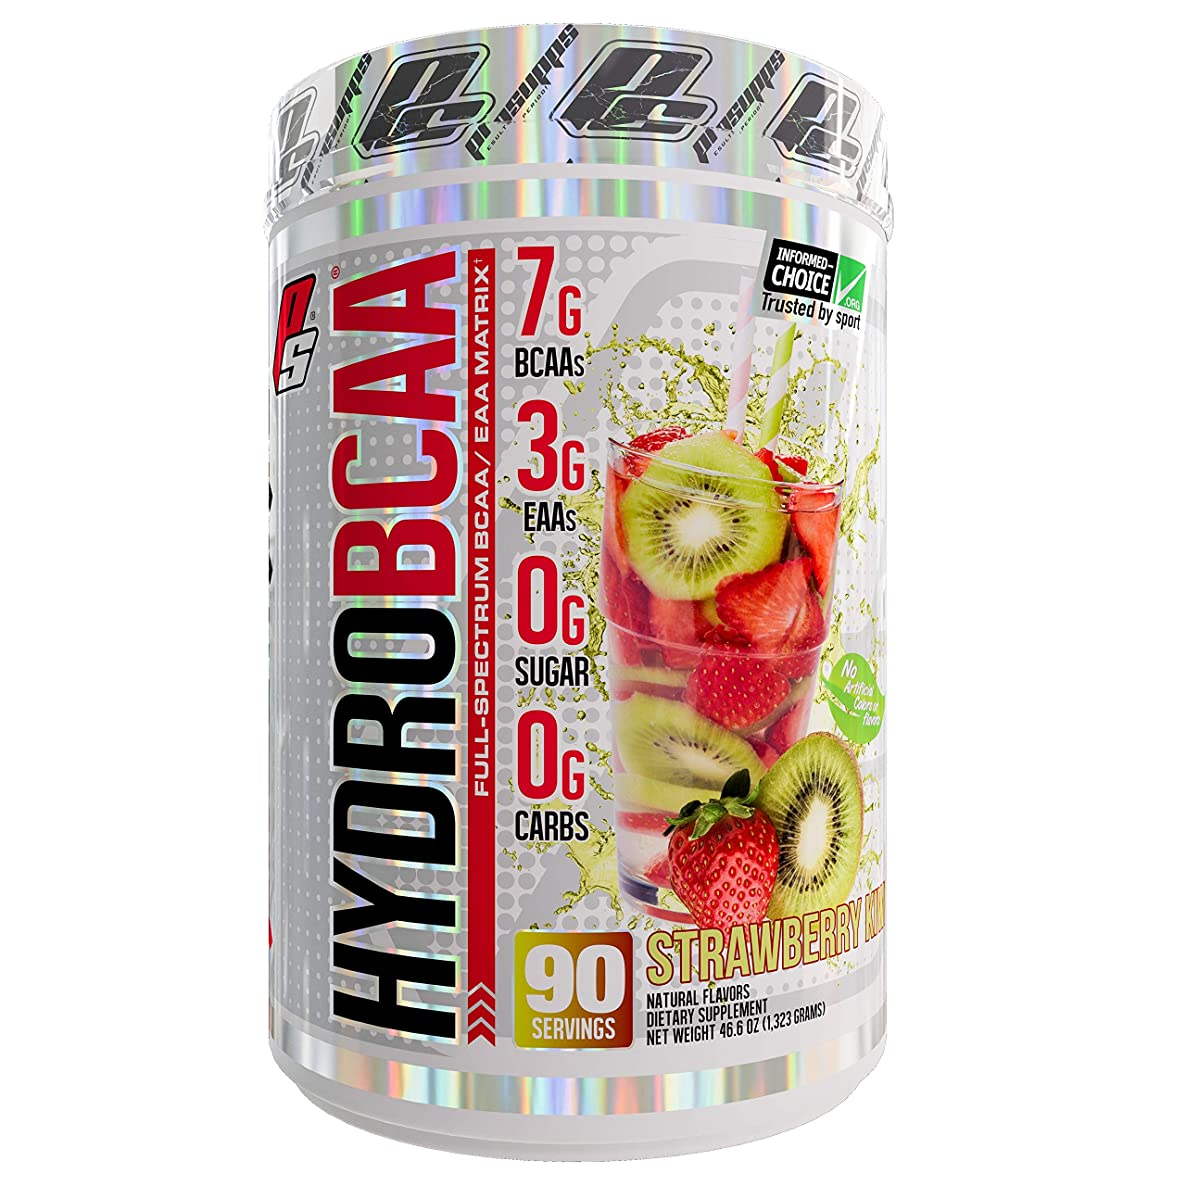 ProSupps HydroBCAA BCAA/EAA Full Spectrum Matrix, 7g BCAAs, 3g EAAs, 0g Sugar, 0g Carbs, 90 Servings, (Strawberry Kiwi Flavor)